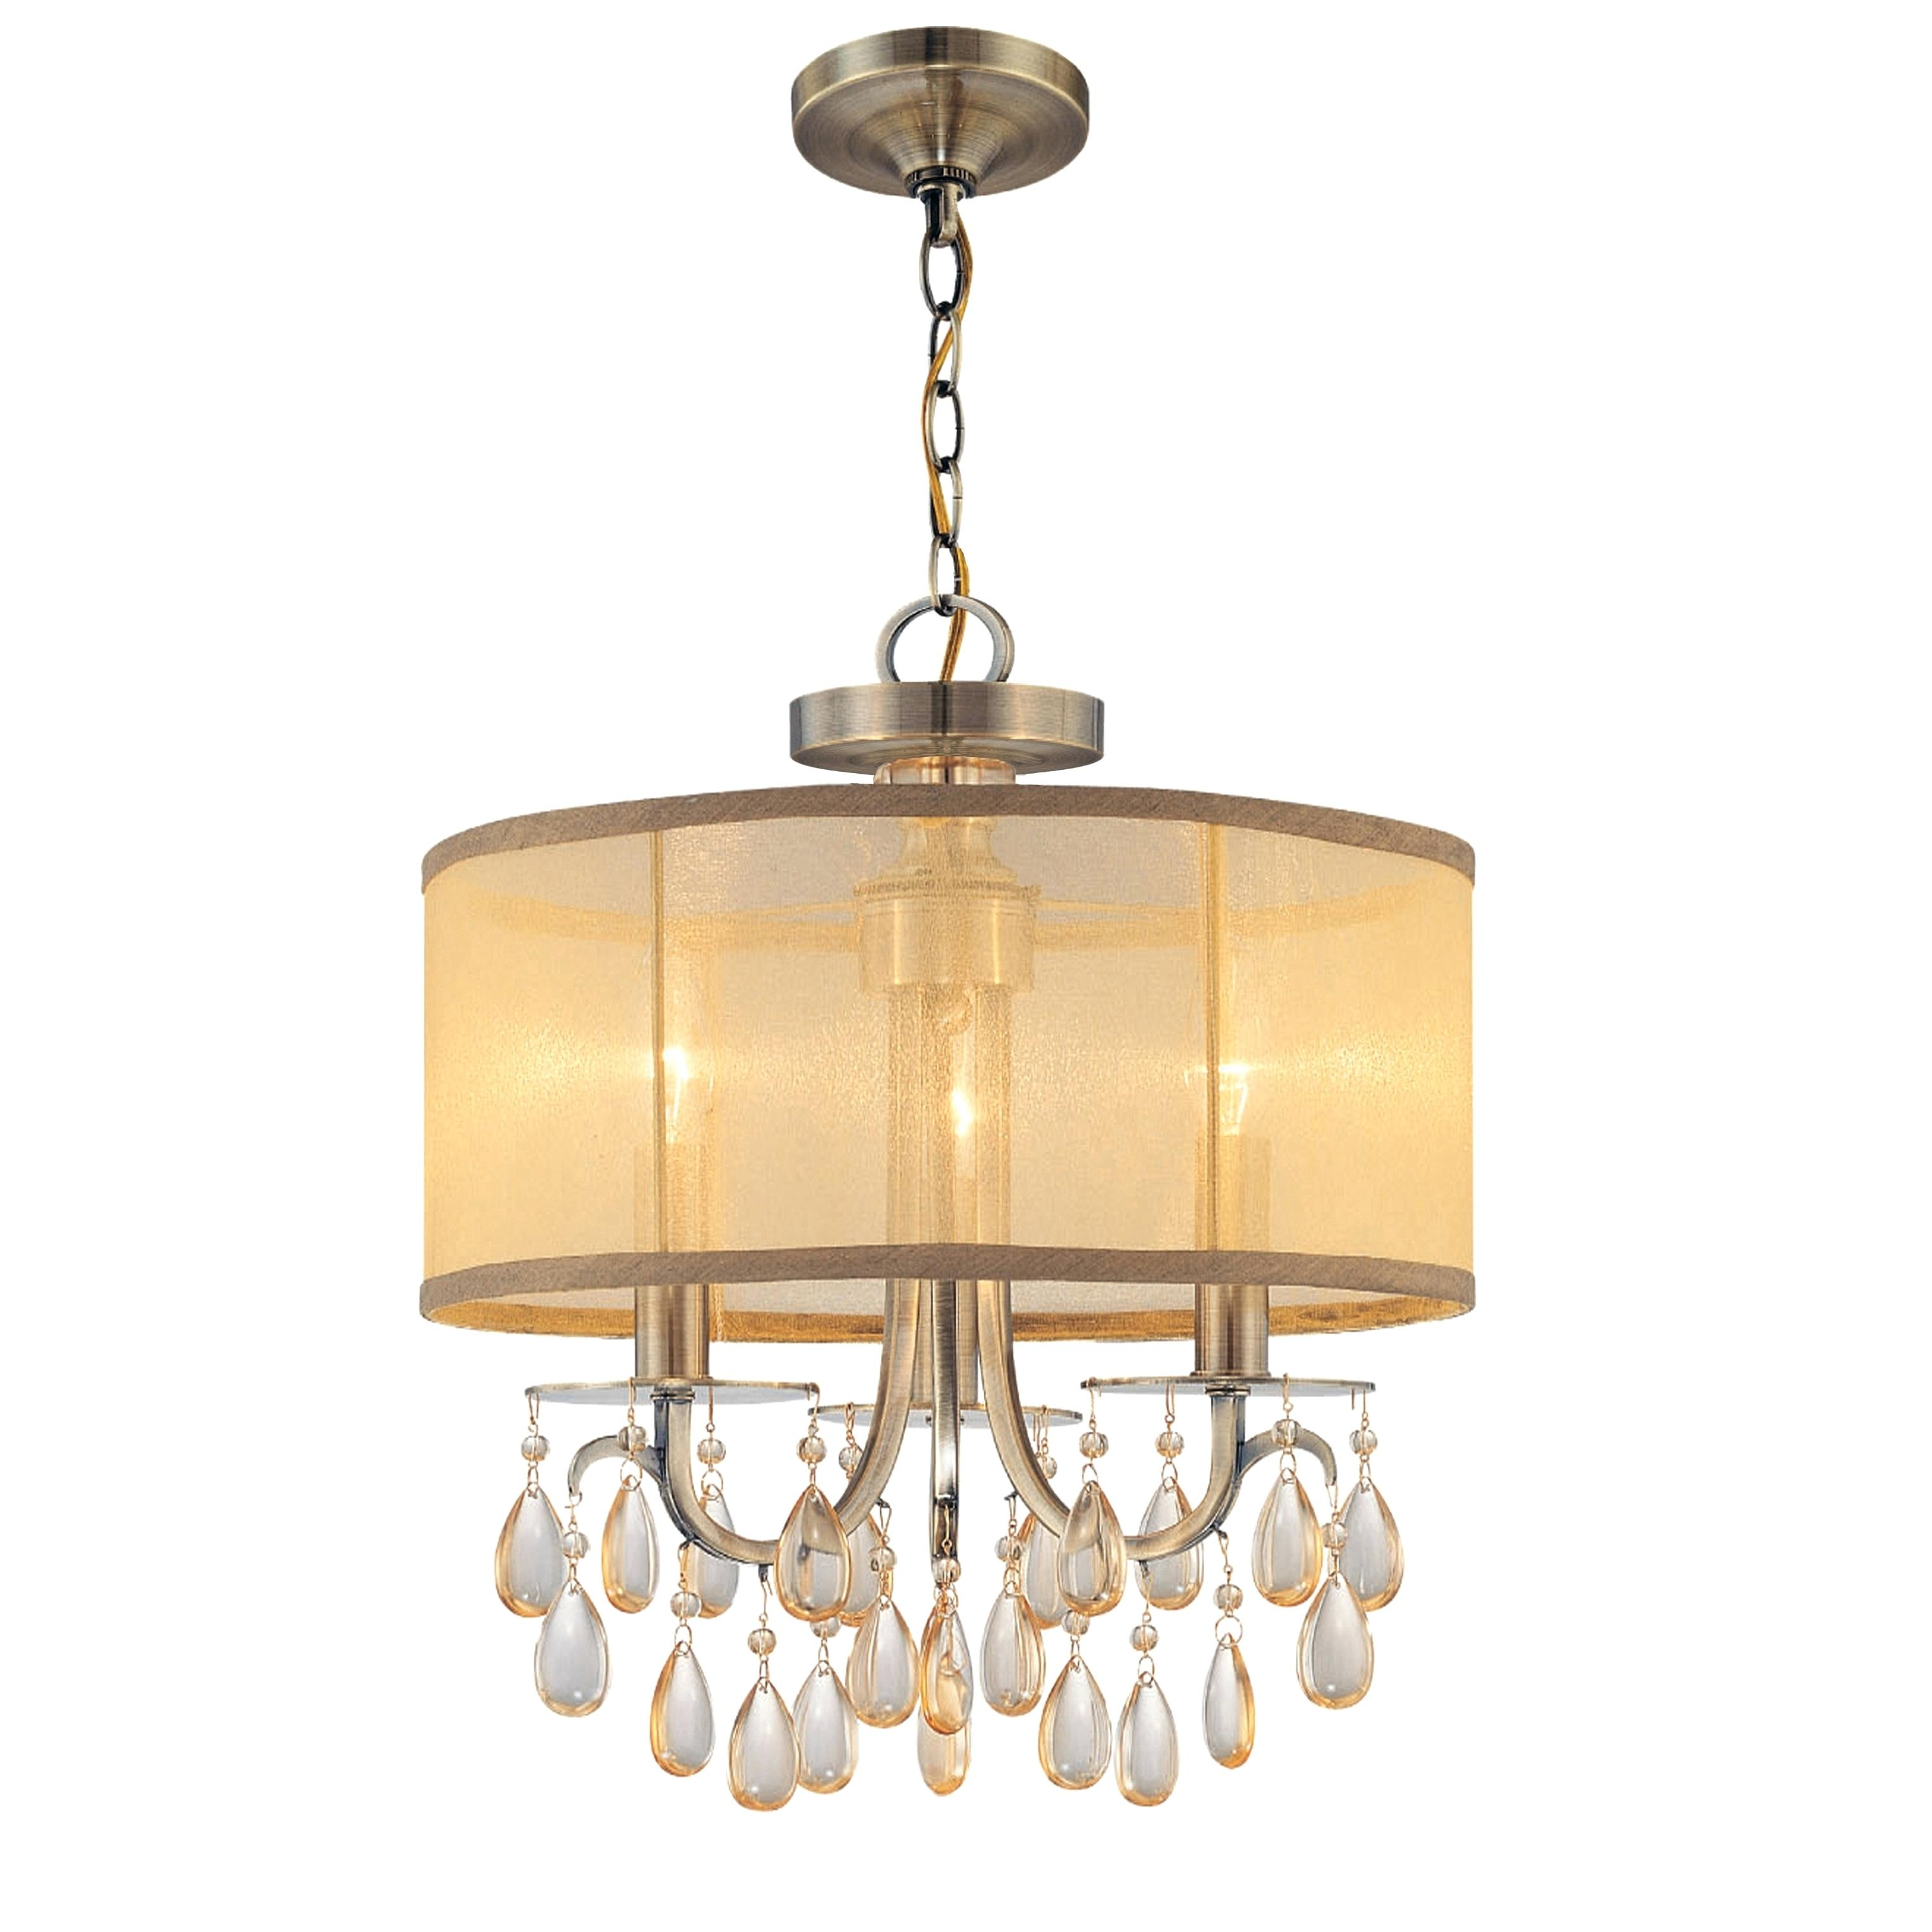 Hampton Bay Chandelier Engageri With Regard To Large Black Chandelier (Photo 10 of 15)